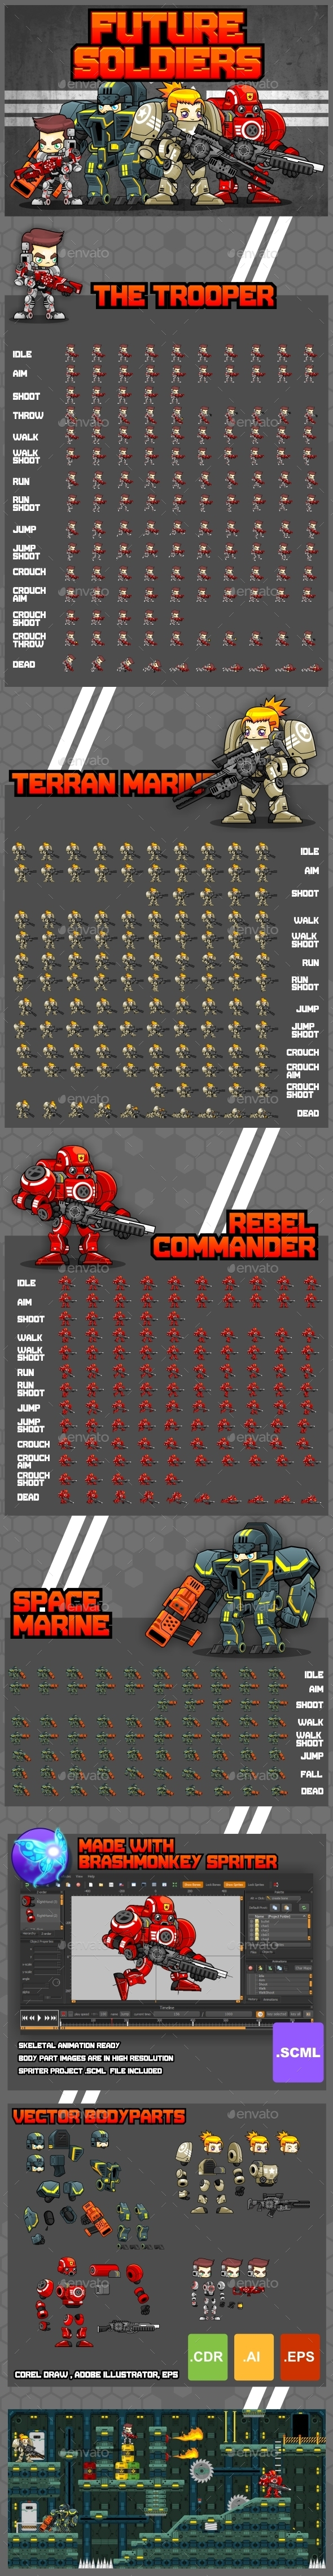 Future Soldiers - Game Sprites (Sprites)